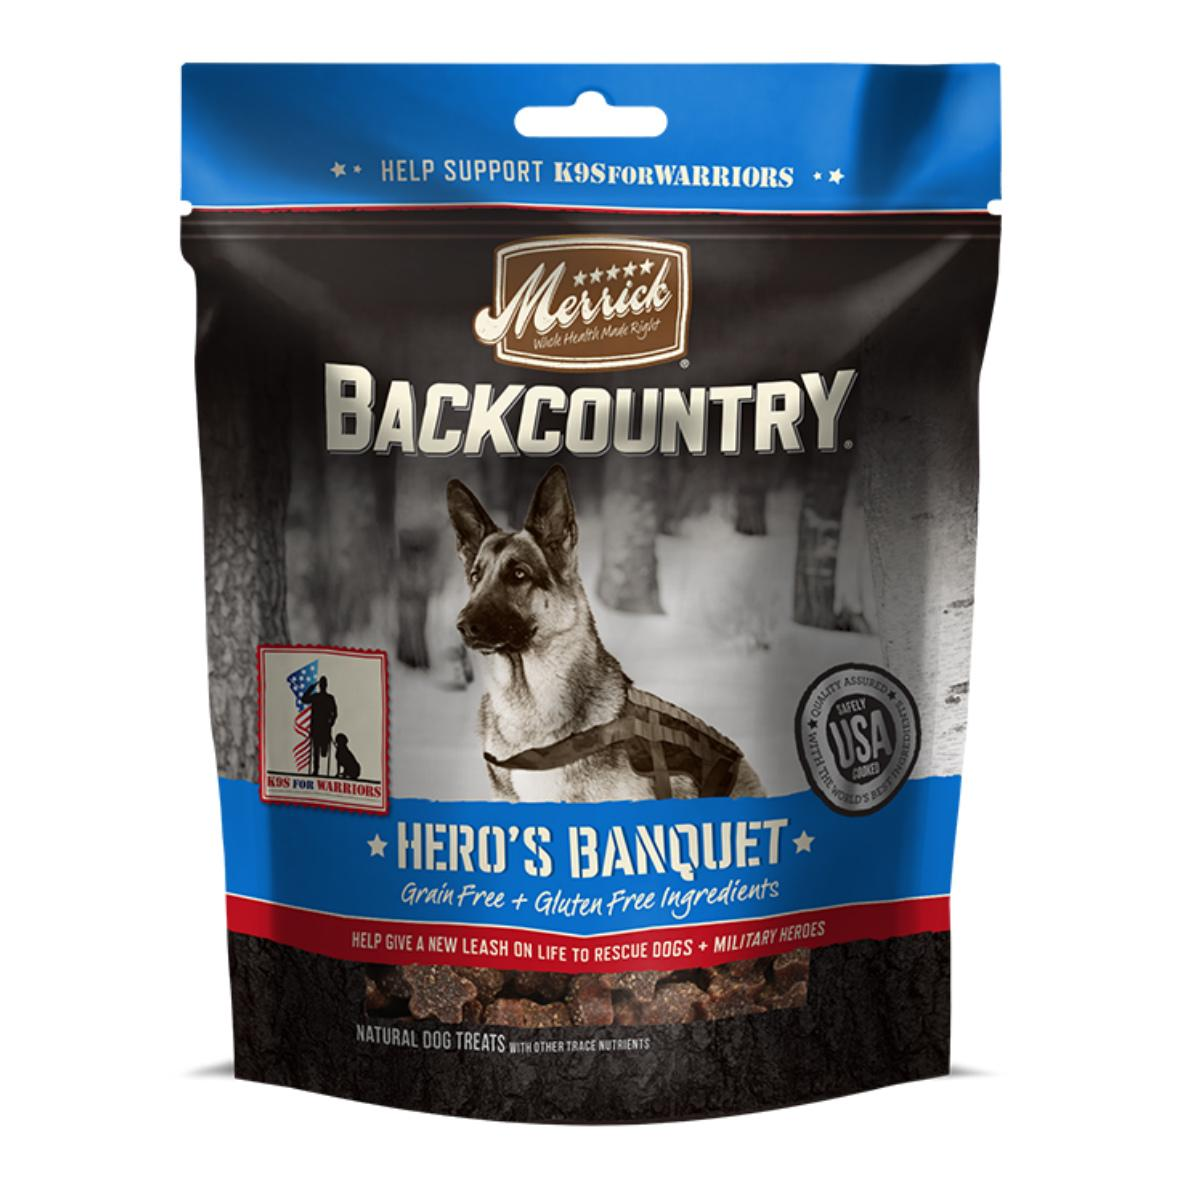 Merrick Backcountry Dog Treats - Hero's Banquet